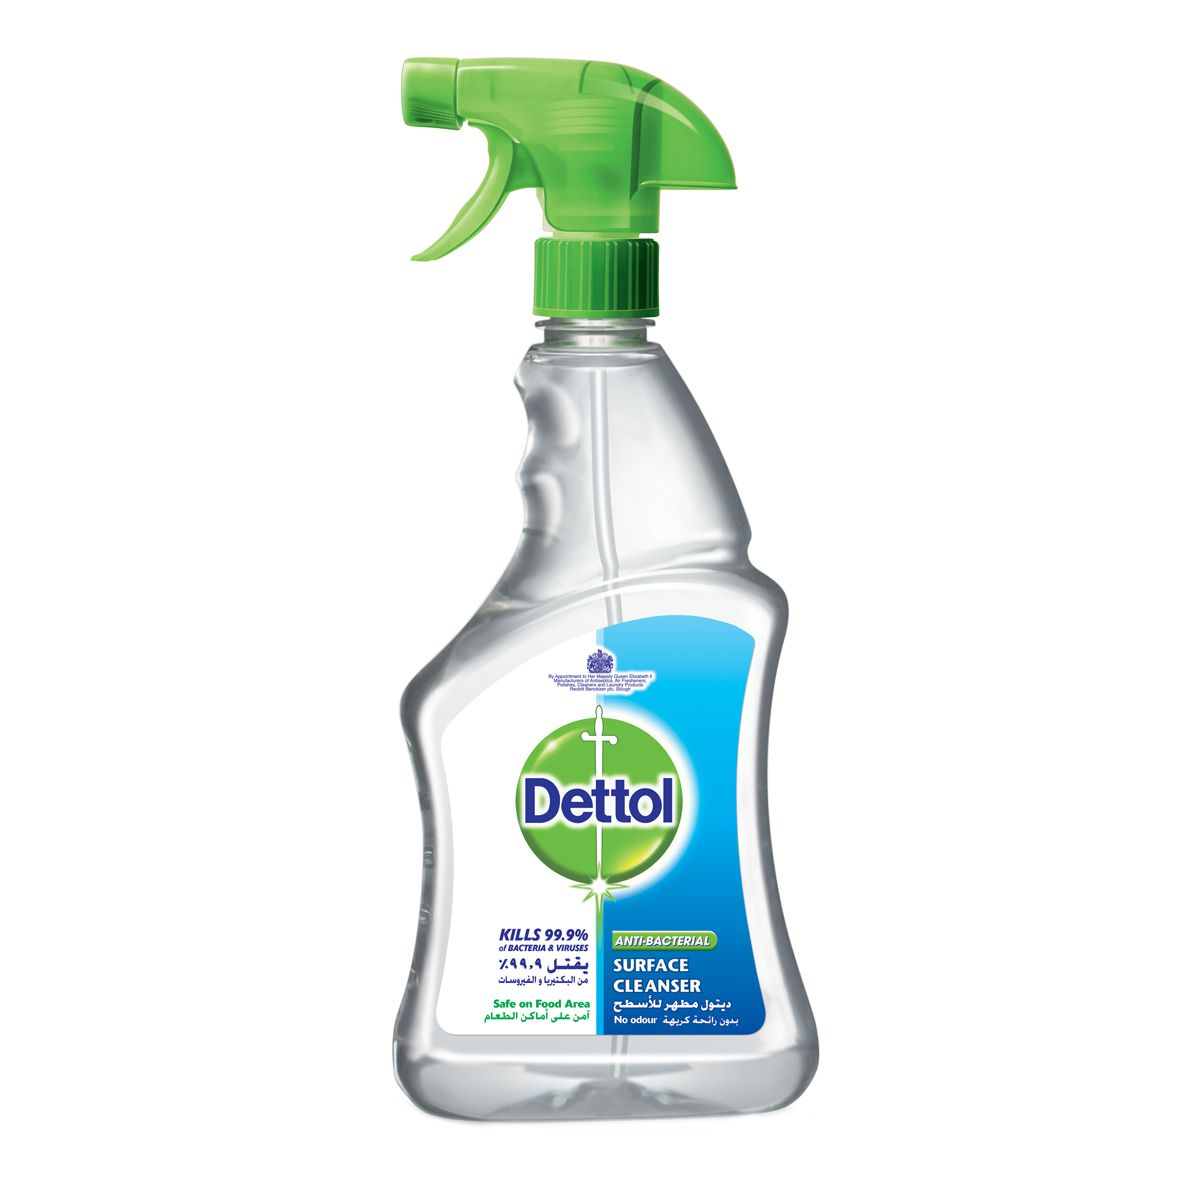 Dettol Antibacterial Disinfectant Cleansing Surface Spray Odorless